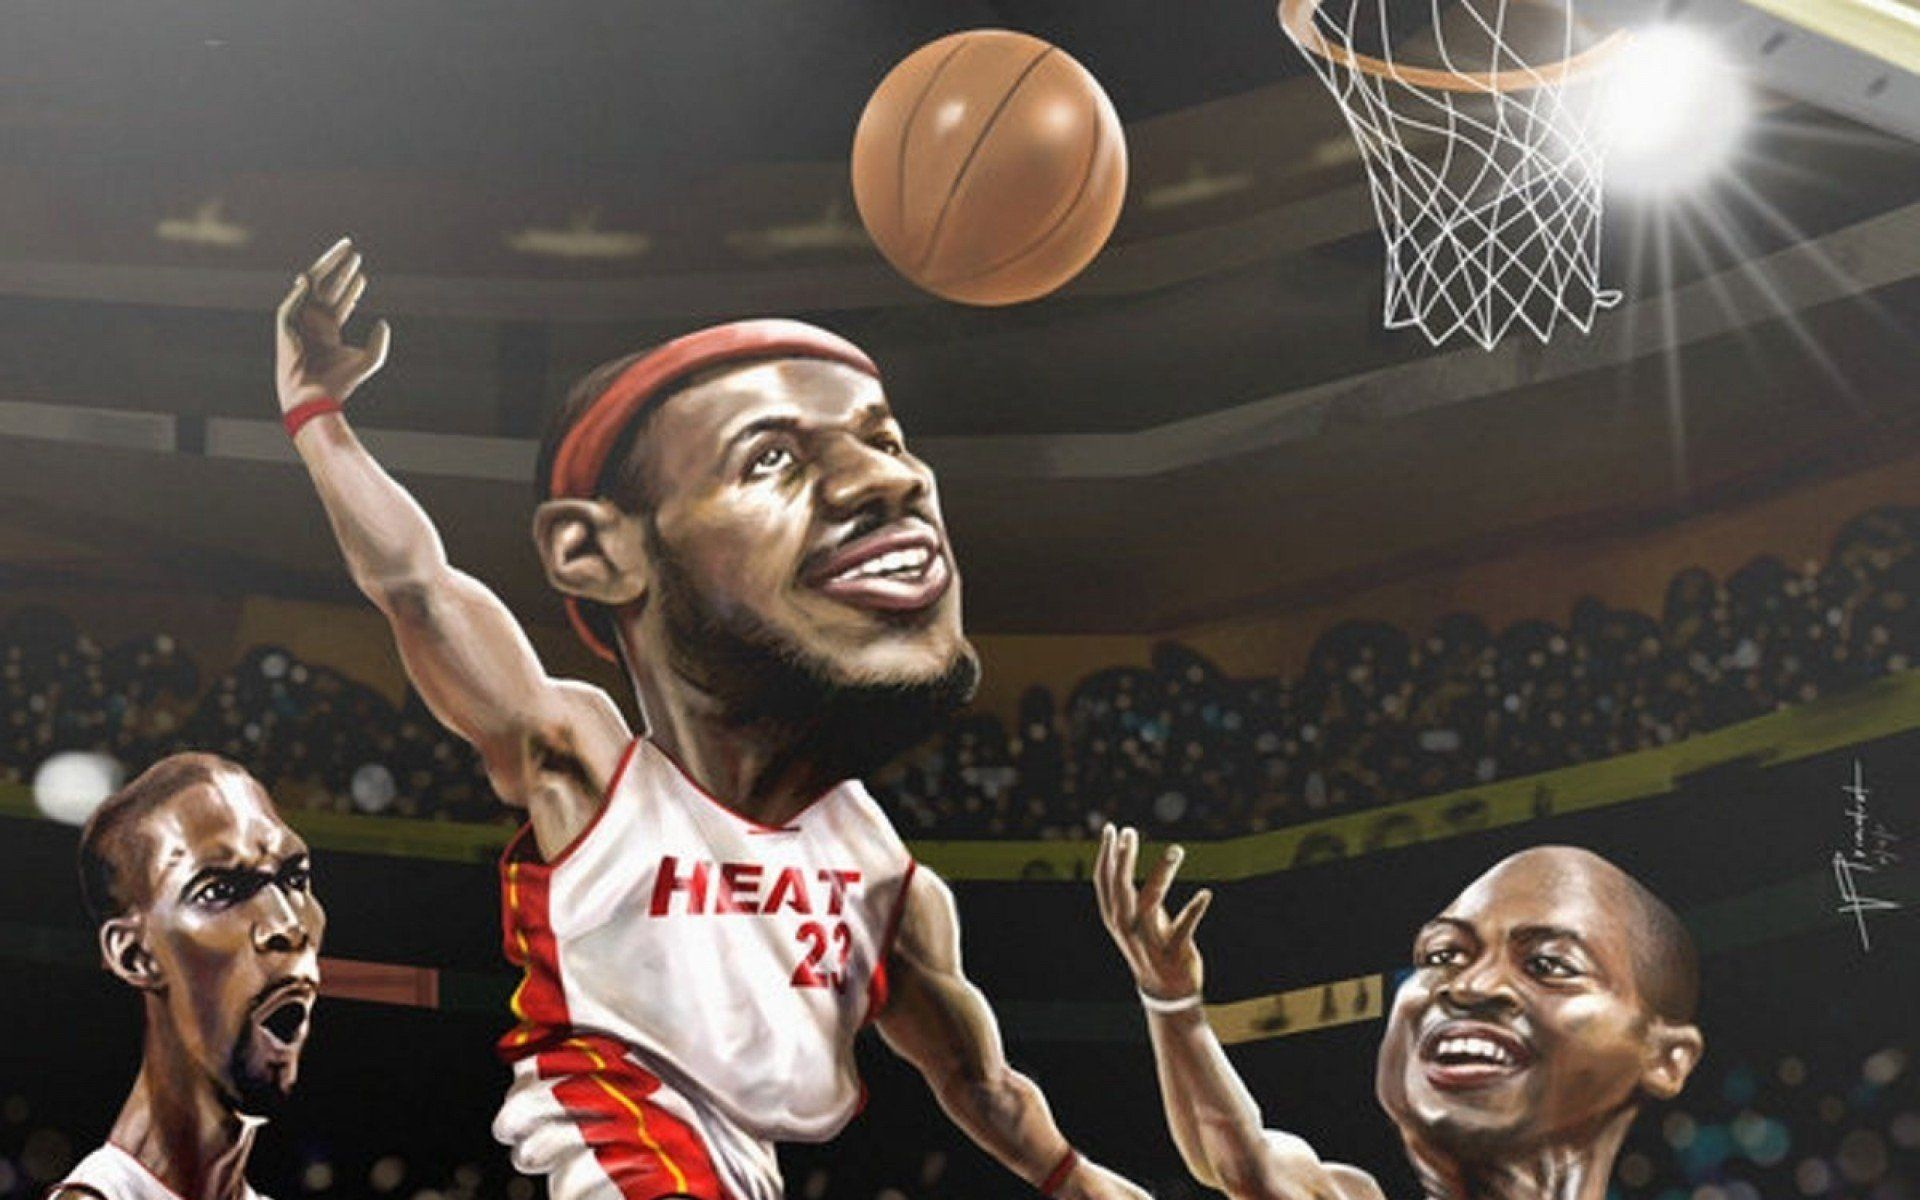 "1920x1200 1152x864 LeBron James Wallpaper by kwangki on DeviantArt"">"